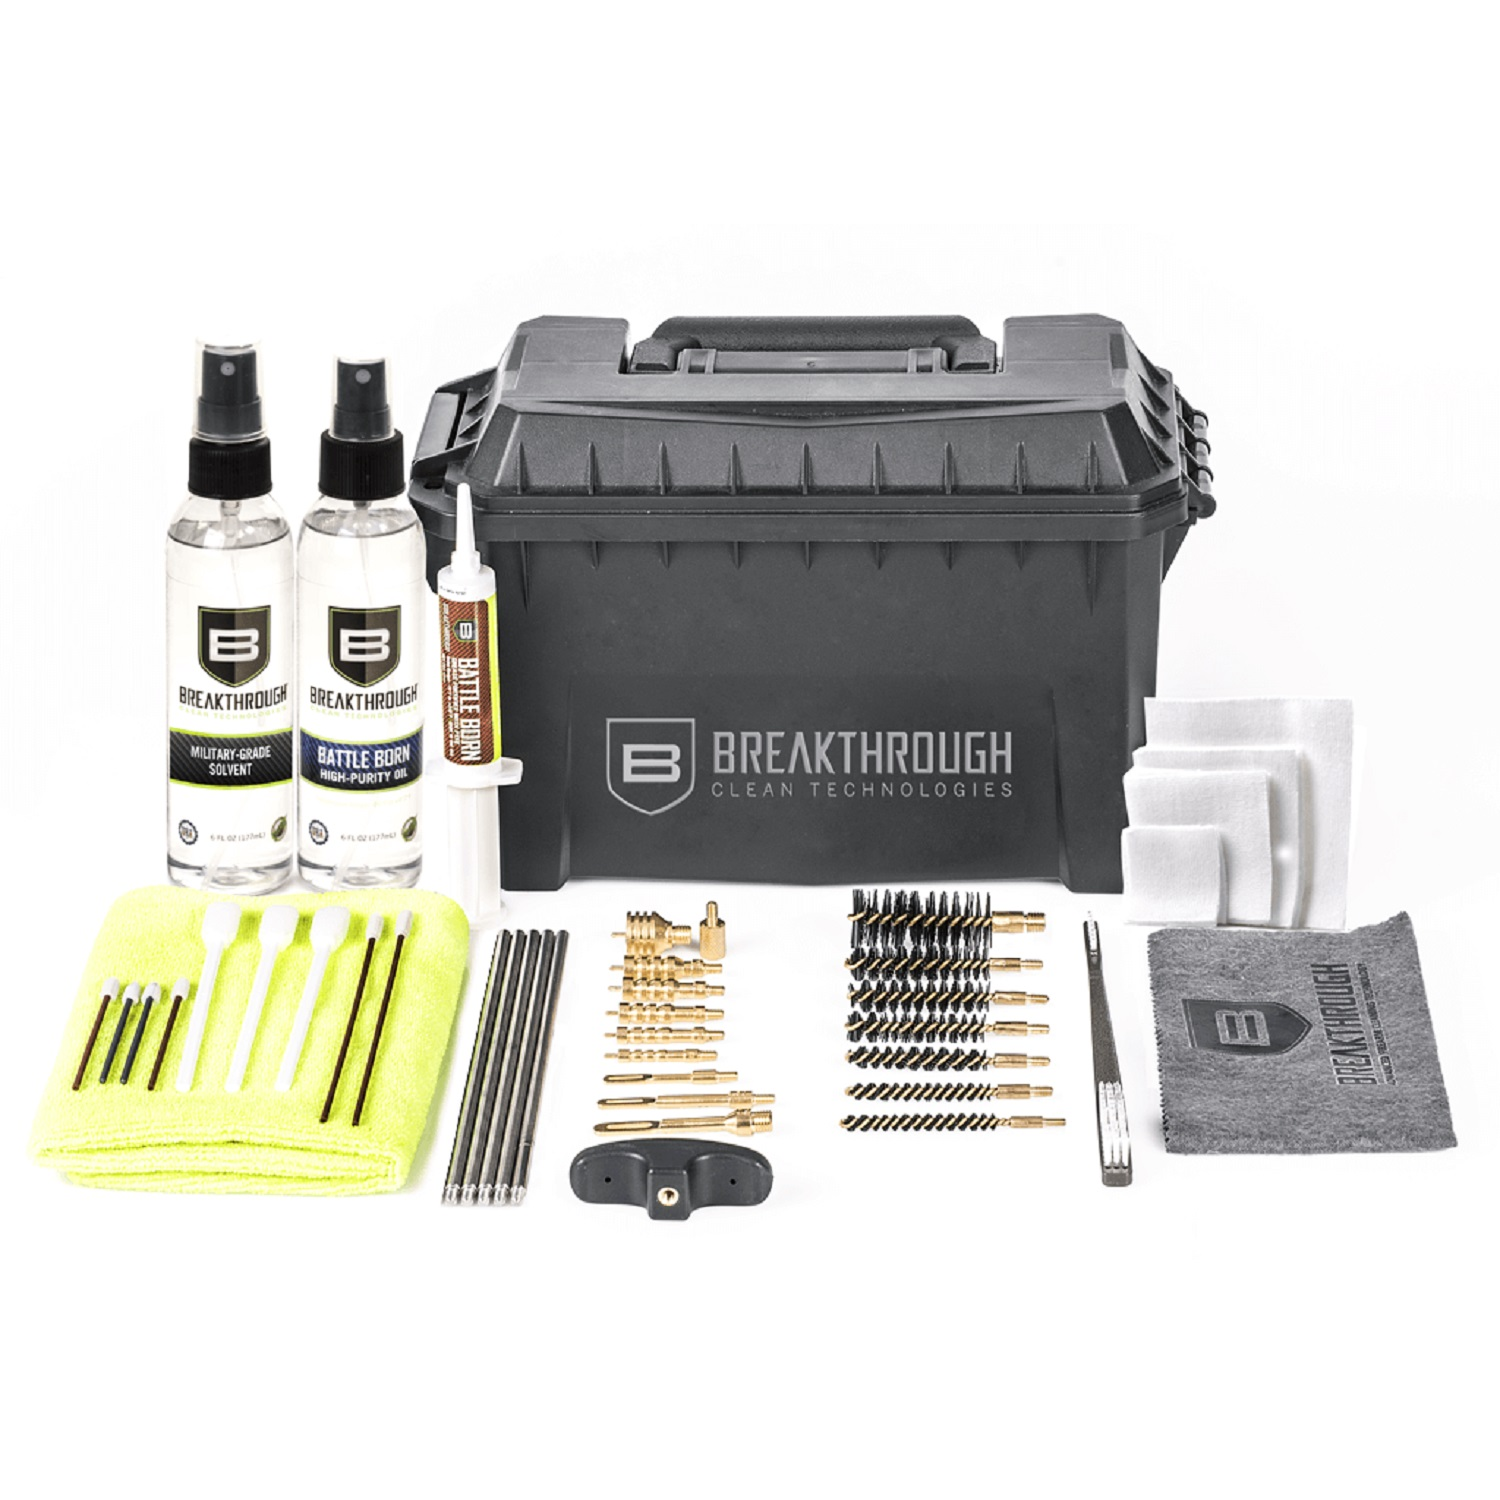 Breakthrough Universal Ammo Can Clean Kit .22 cal thru 12 ga